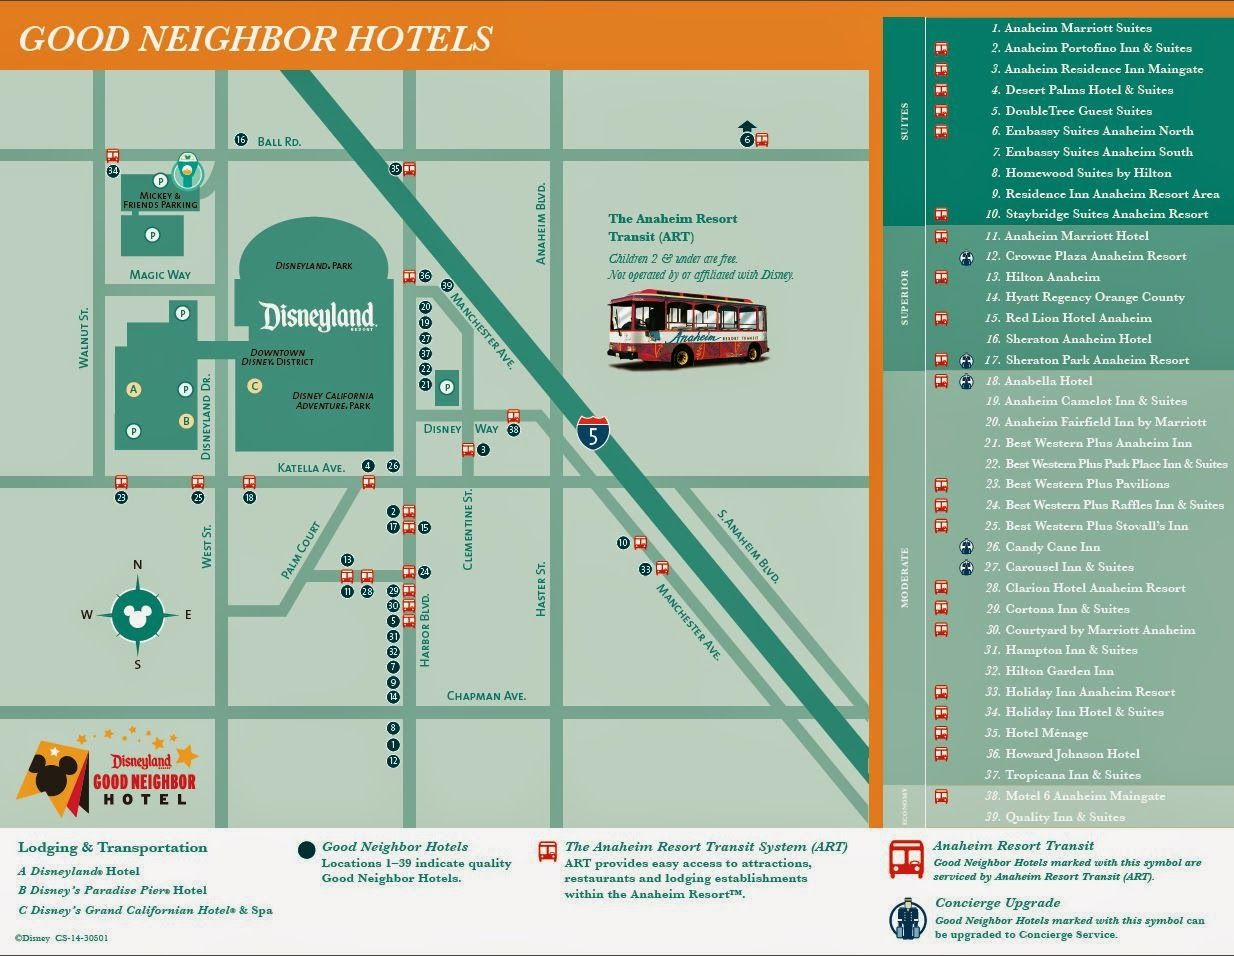 Disneyland Good Neighbor Hotel Map